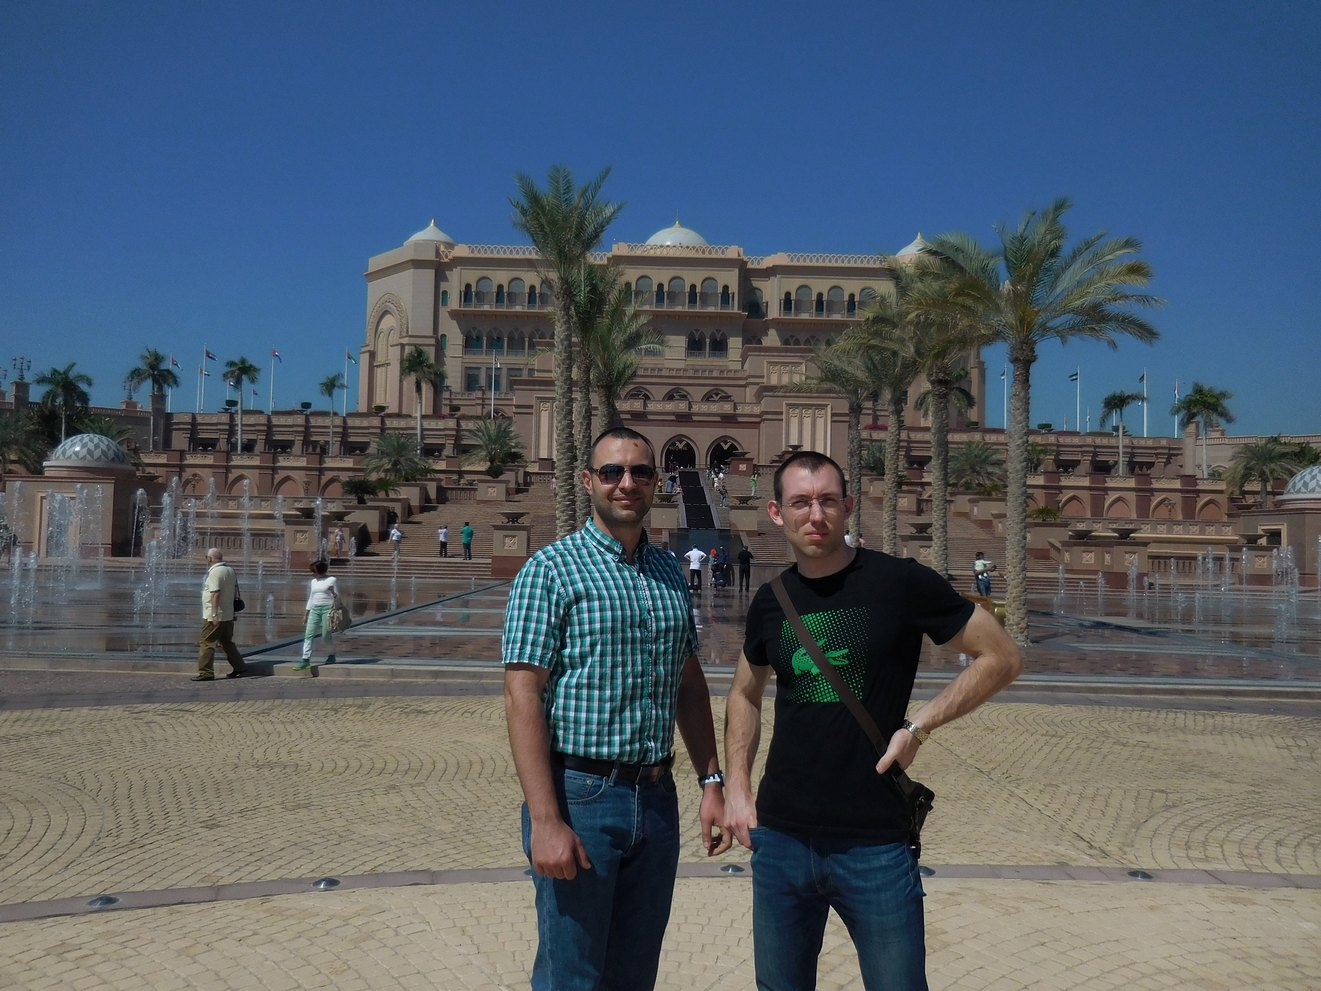 Emirates Palace, Abu Dhabi, UAE, Exterior Look, Fountains and Garden